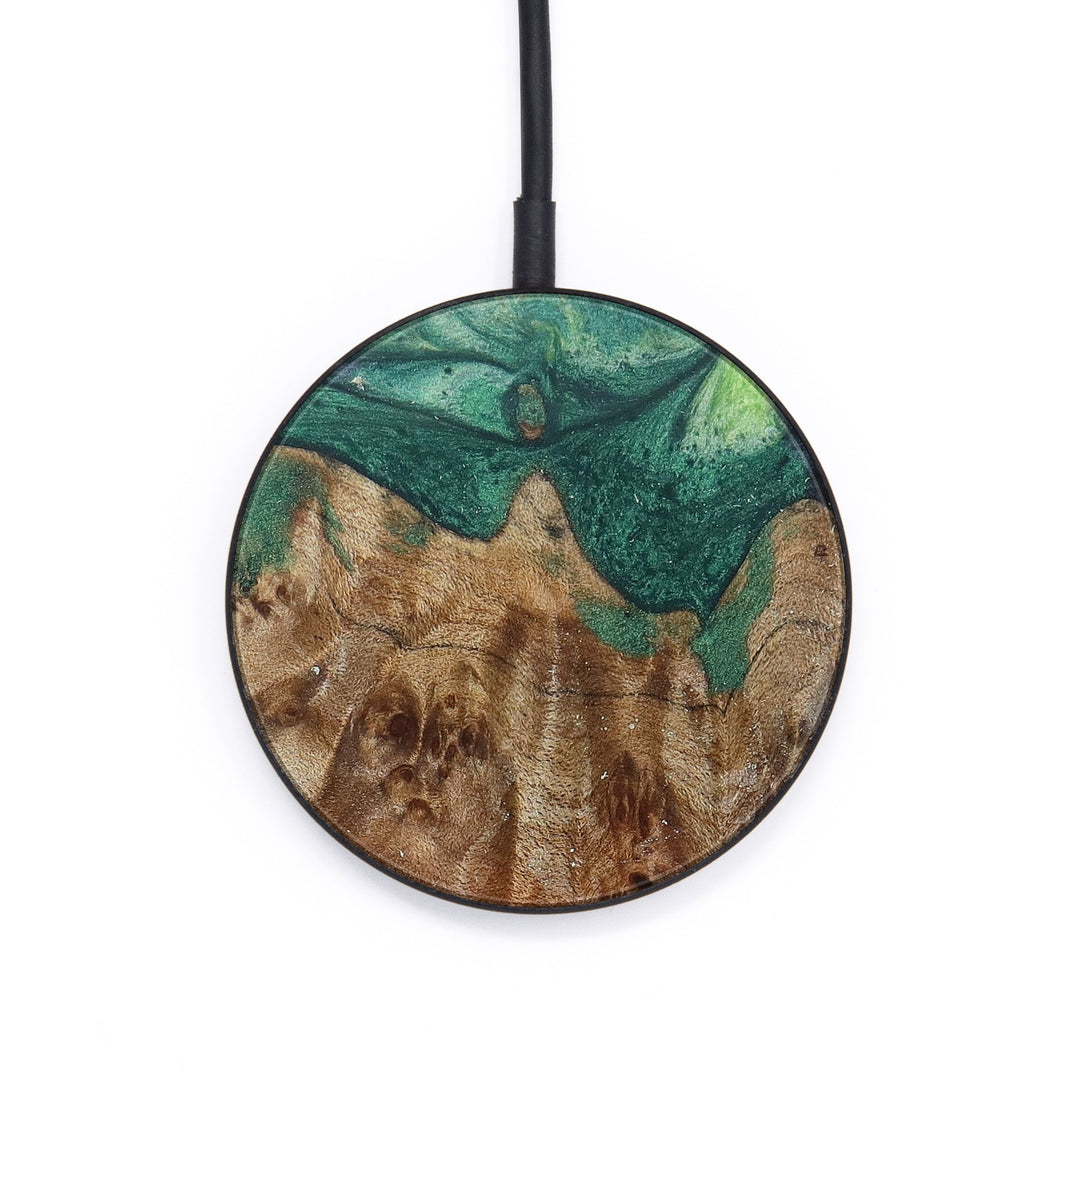 Circle Wood+Resin Wireless Charger - Clementine (Dark Green, 388297)